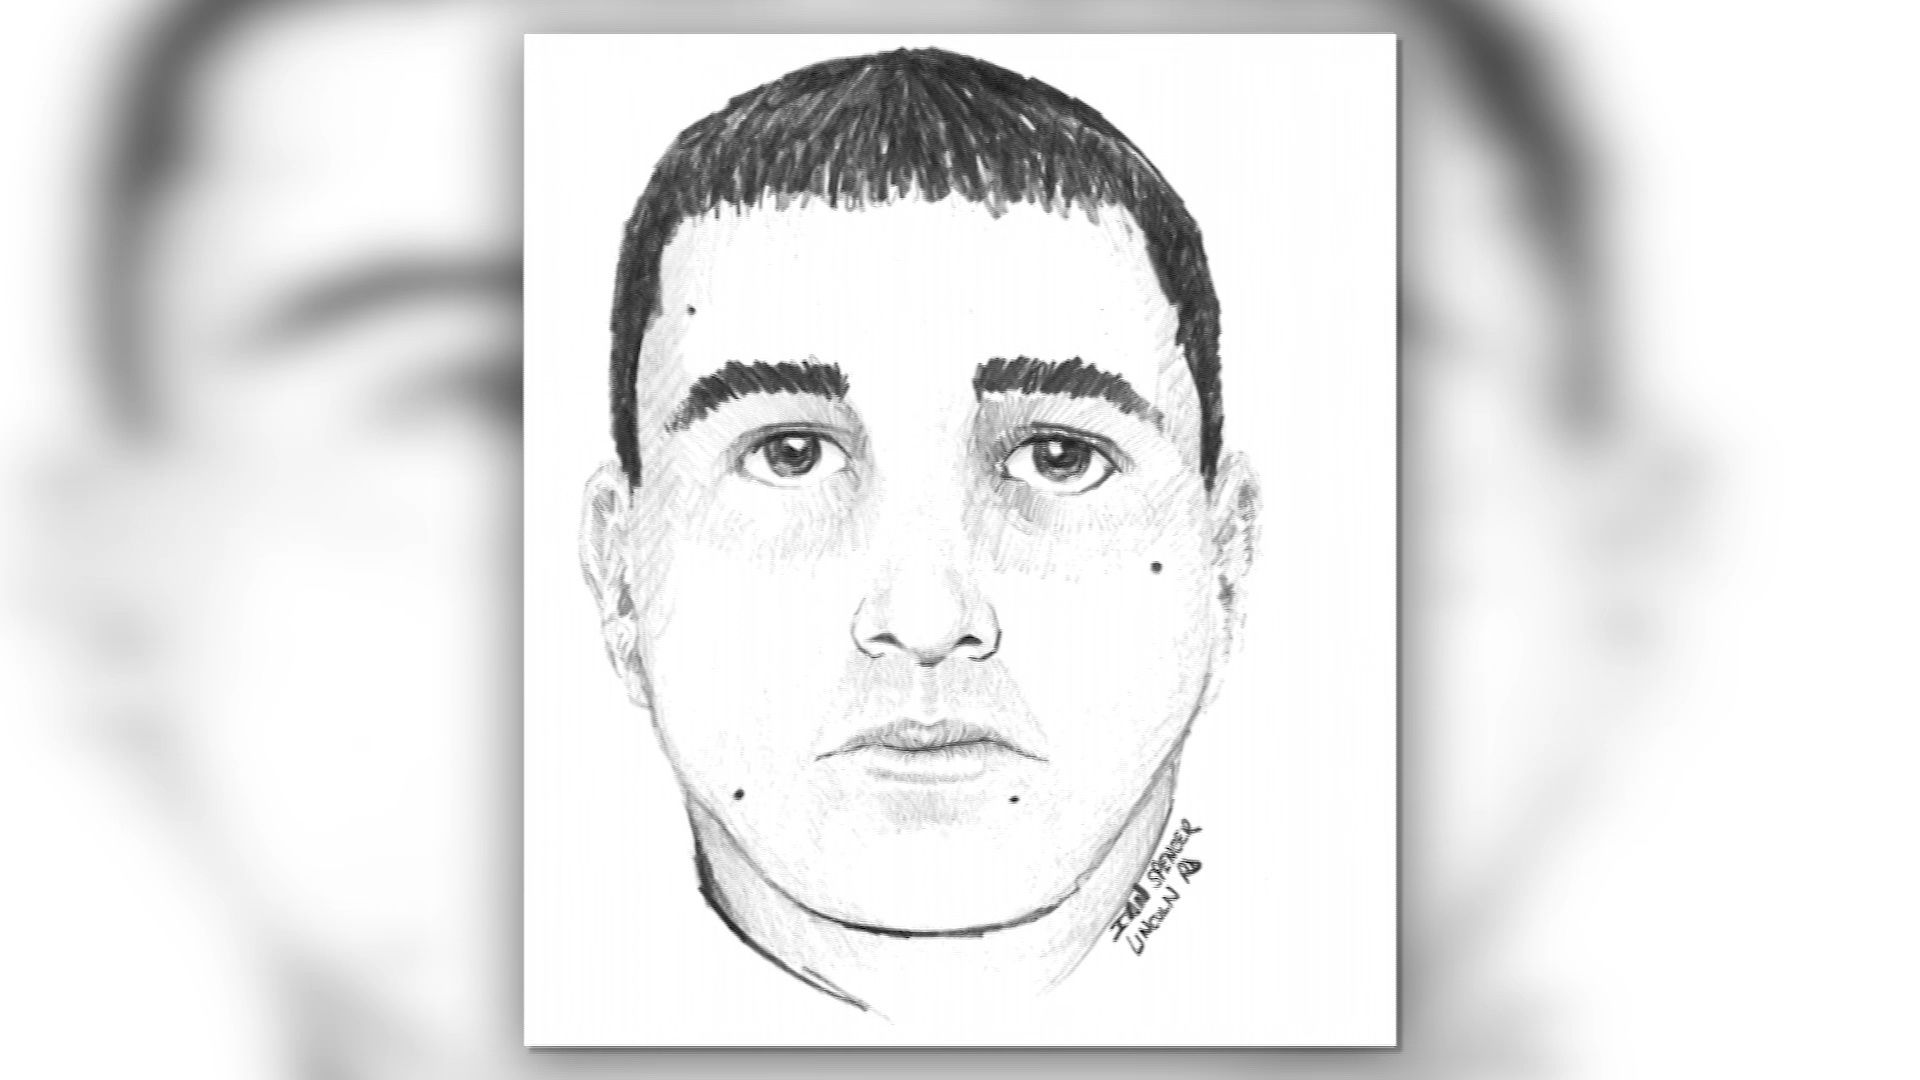 Wayland police searching for man who allegedly tried to lure child into vehicle